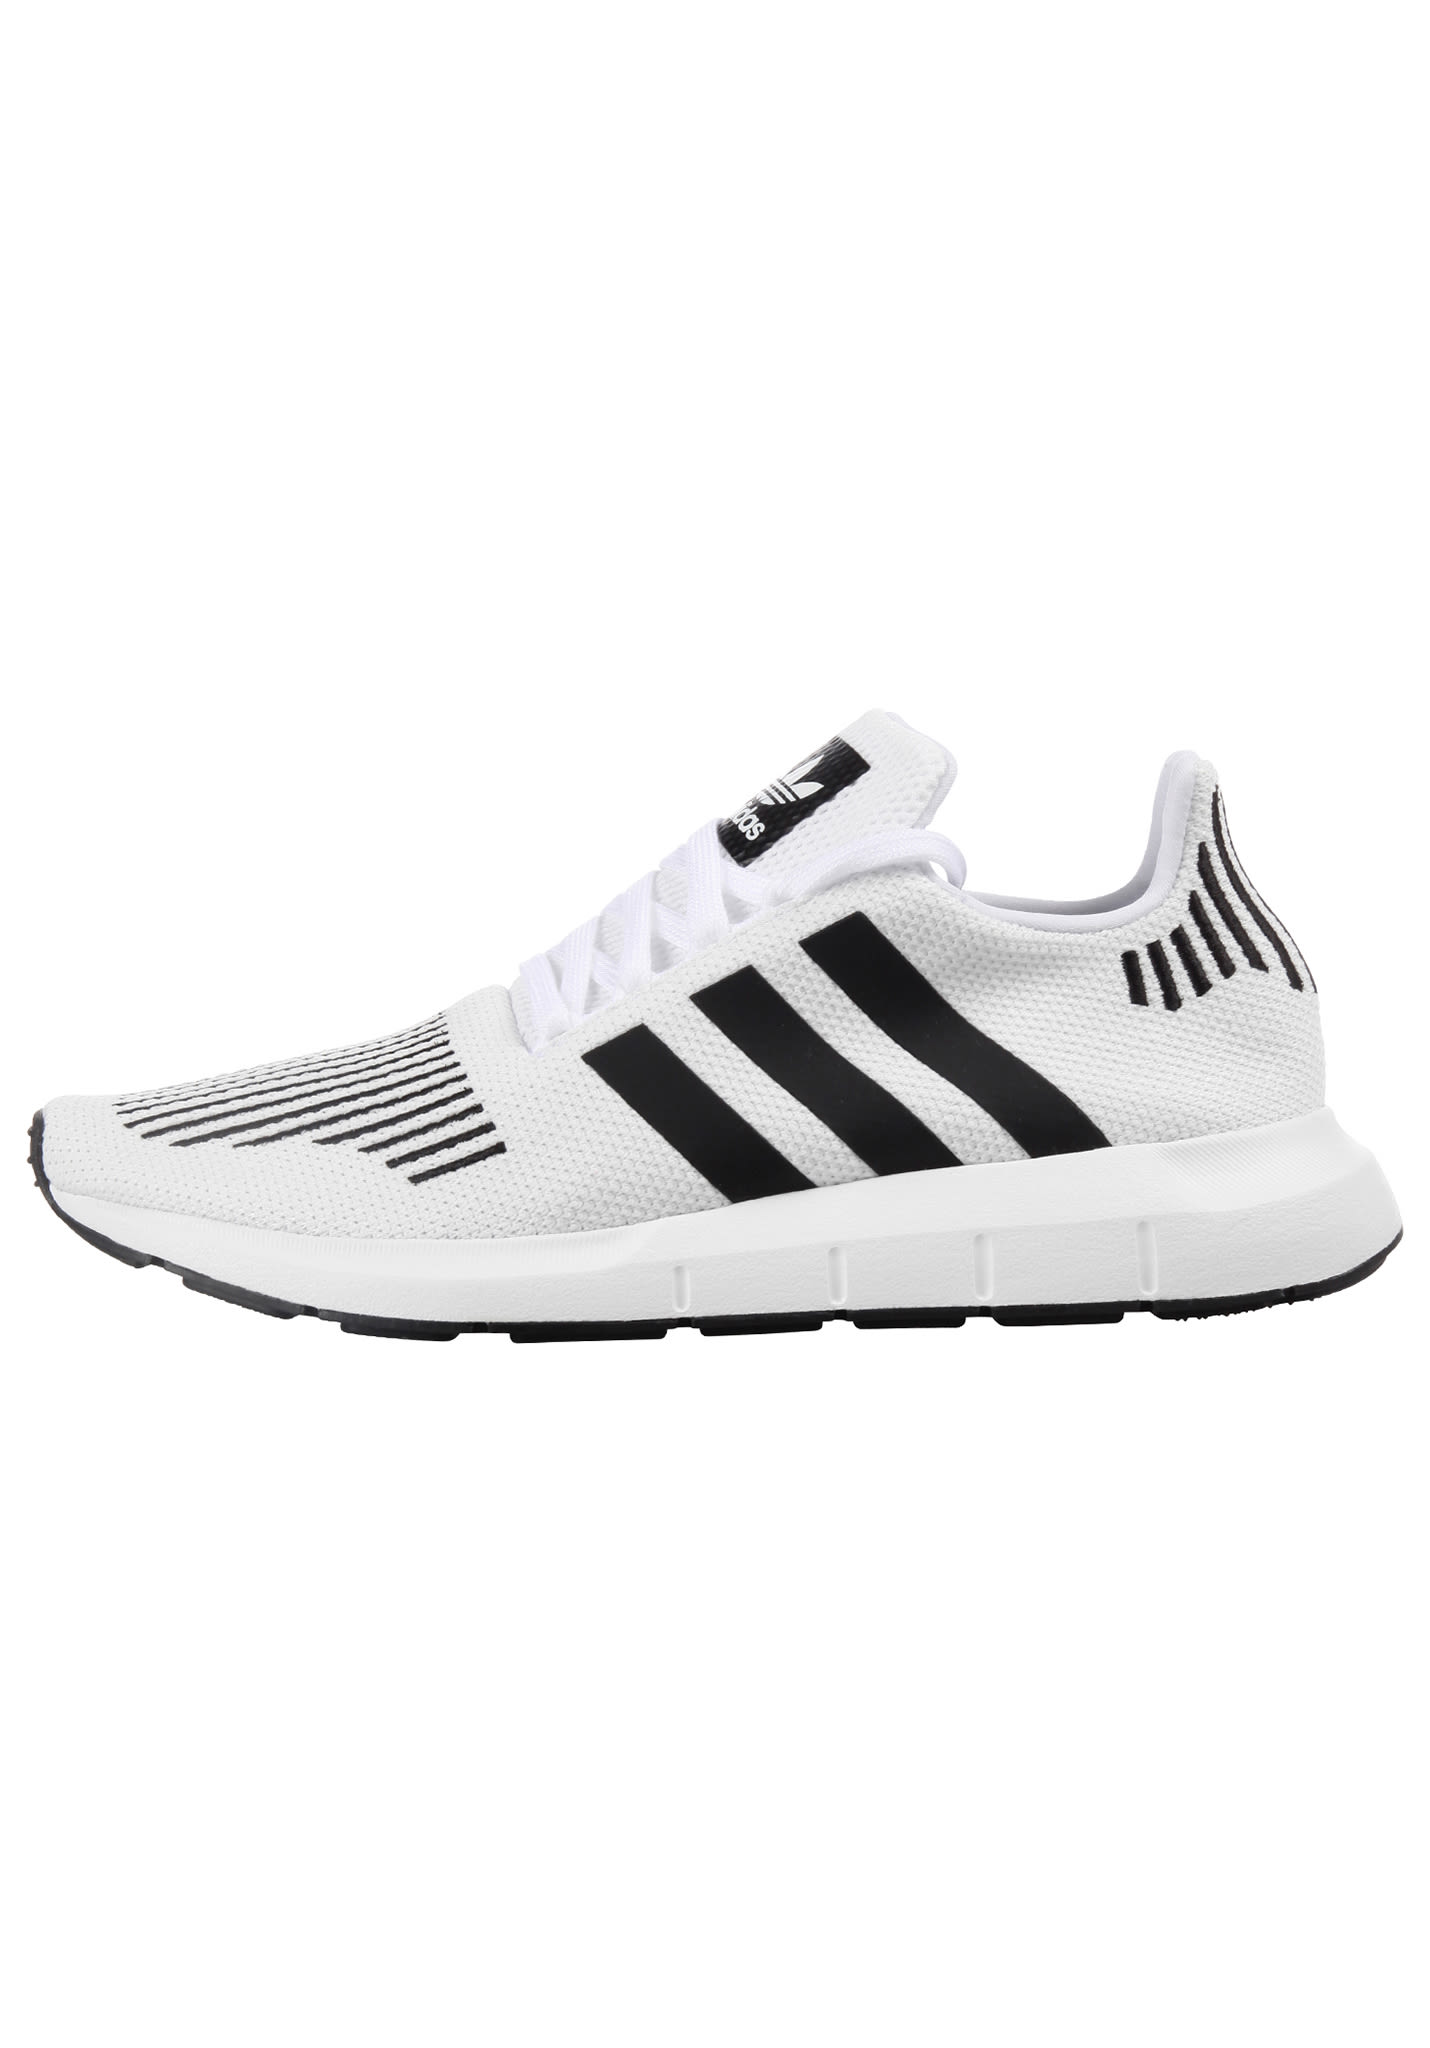 3fd6b540b4ccf ADIDAS ORIGINALS Swift Run - Sneakers for Men - White - Planet Sports